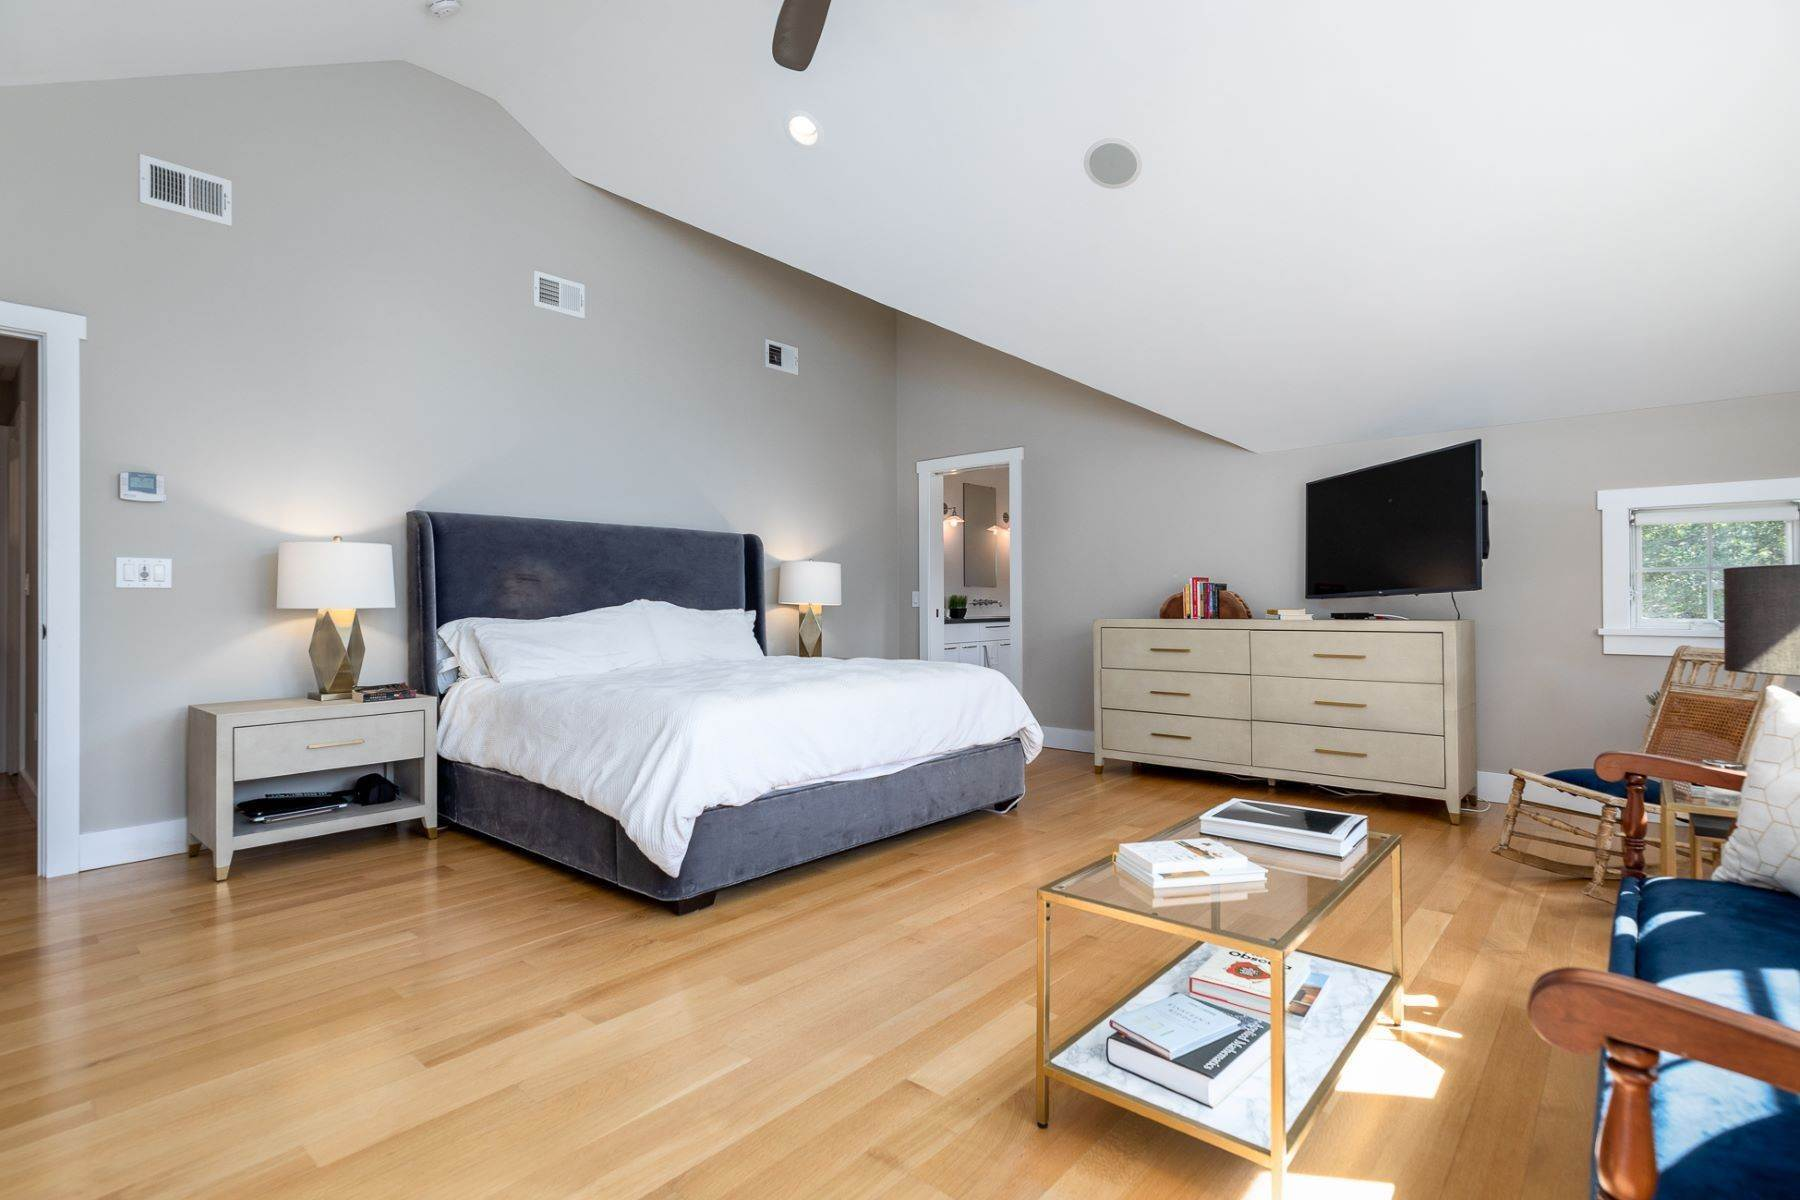 19. Single Family Homes for Sale at A Modern Transformation by Mercer General Works 22 Fisher Avenue, Princeton, New Jersey 08540 United States